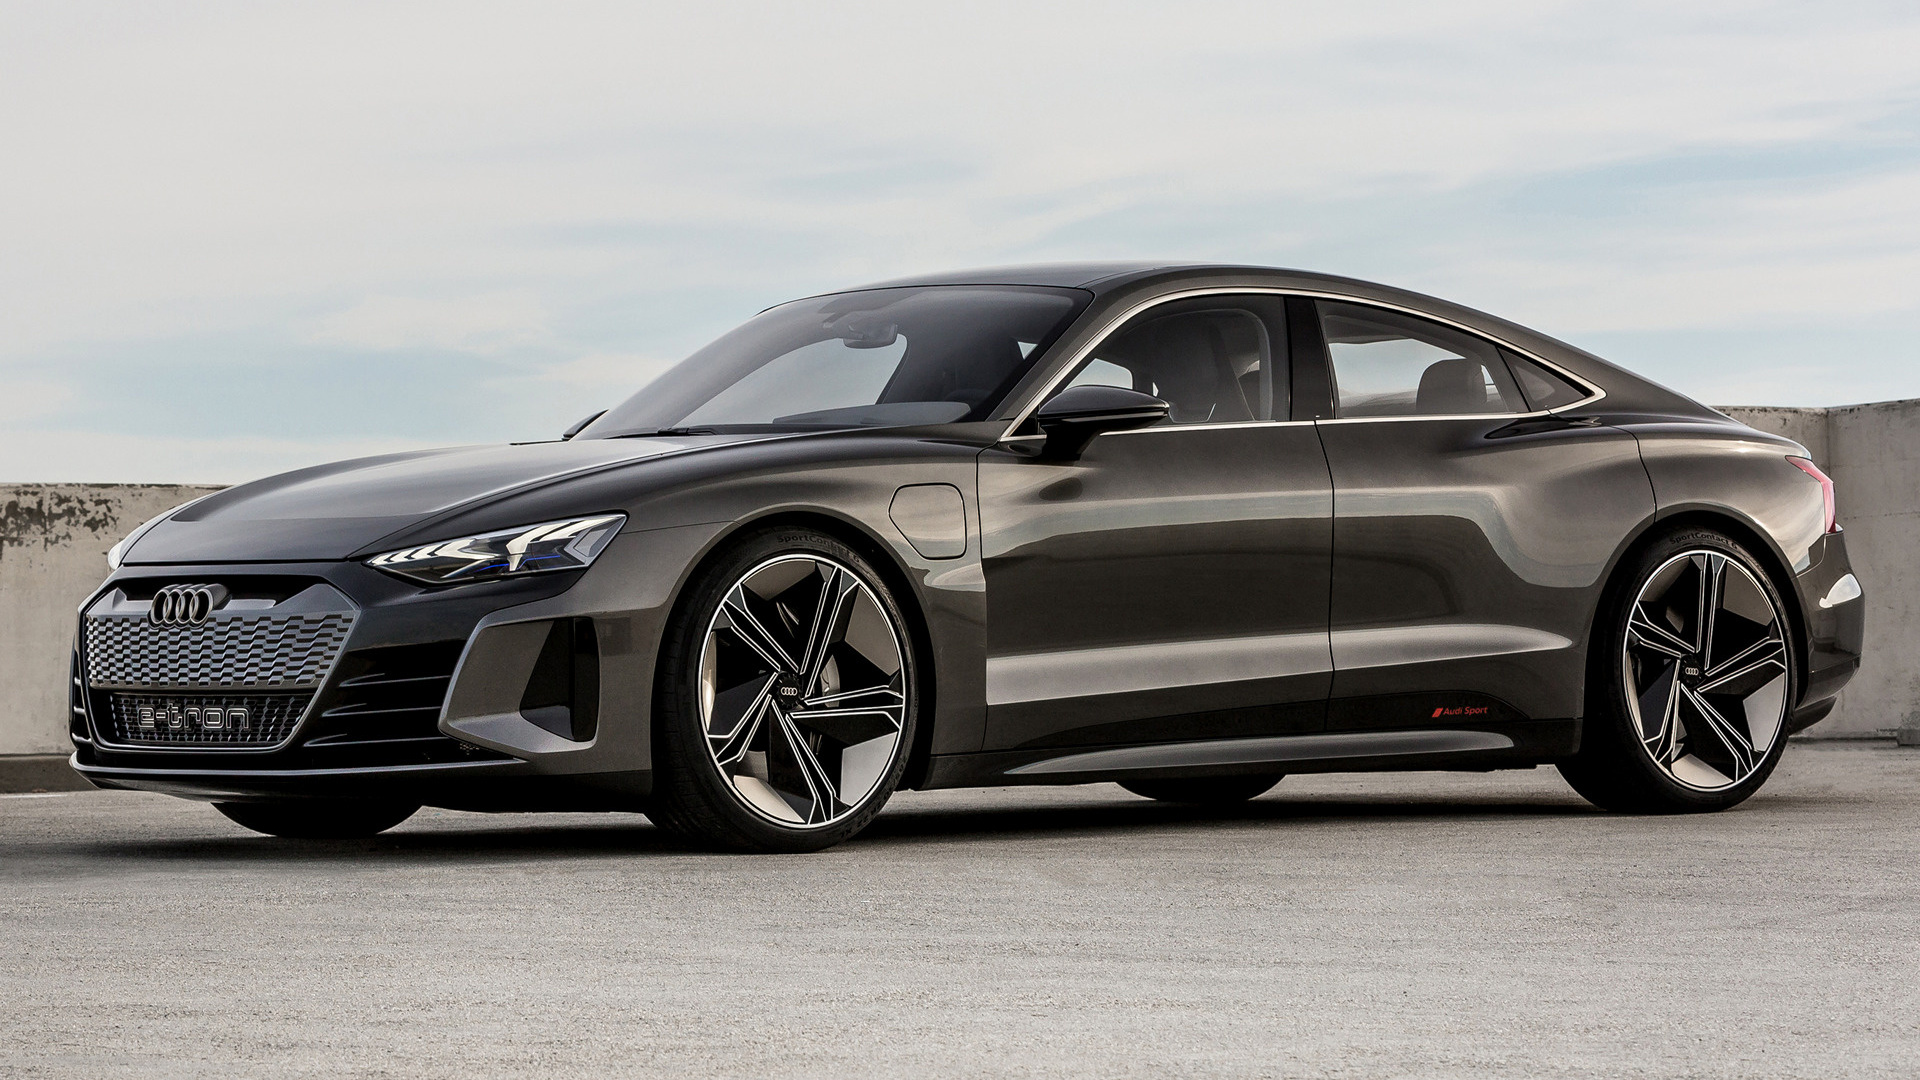 2018 Audi E Tron Gt Concept Wallpapers And Hd Images Car